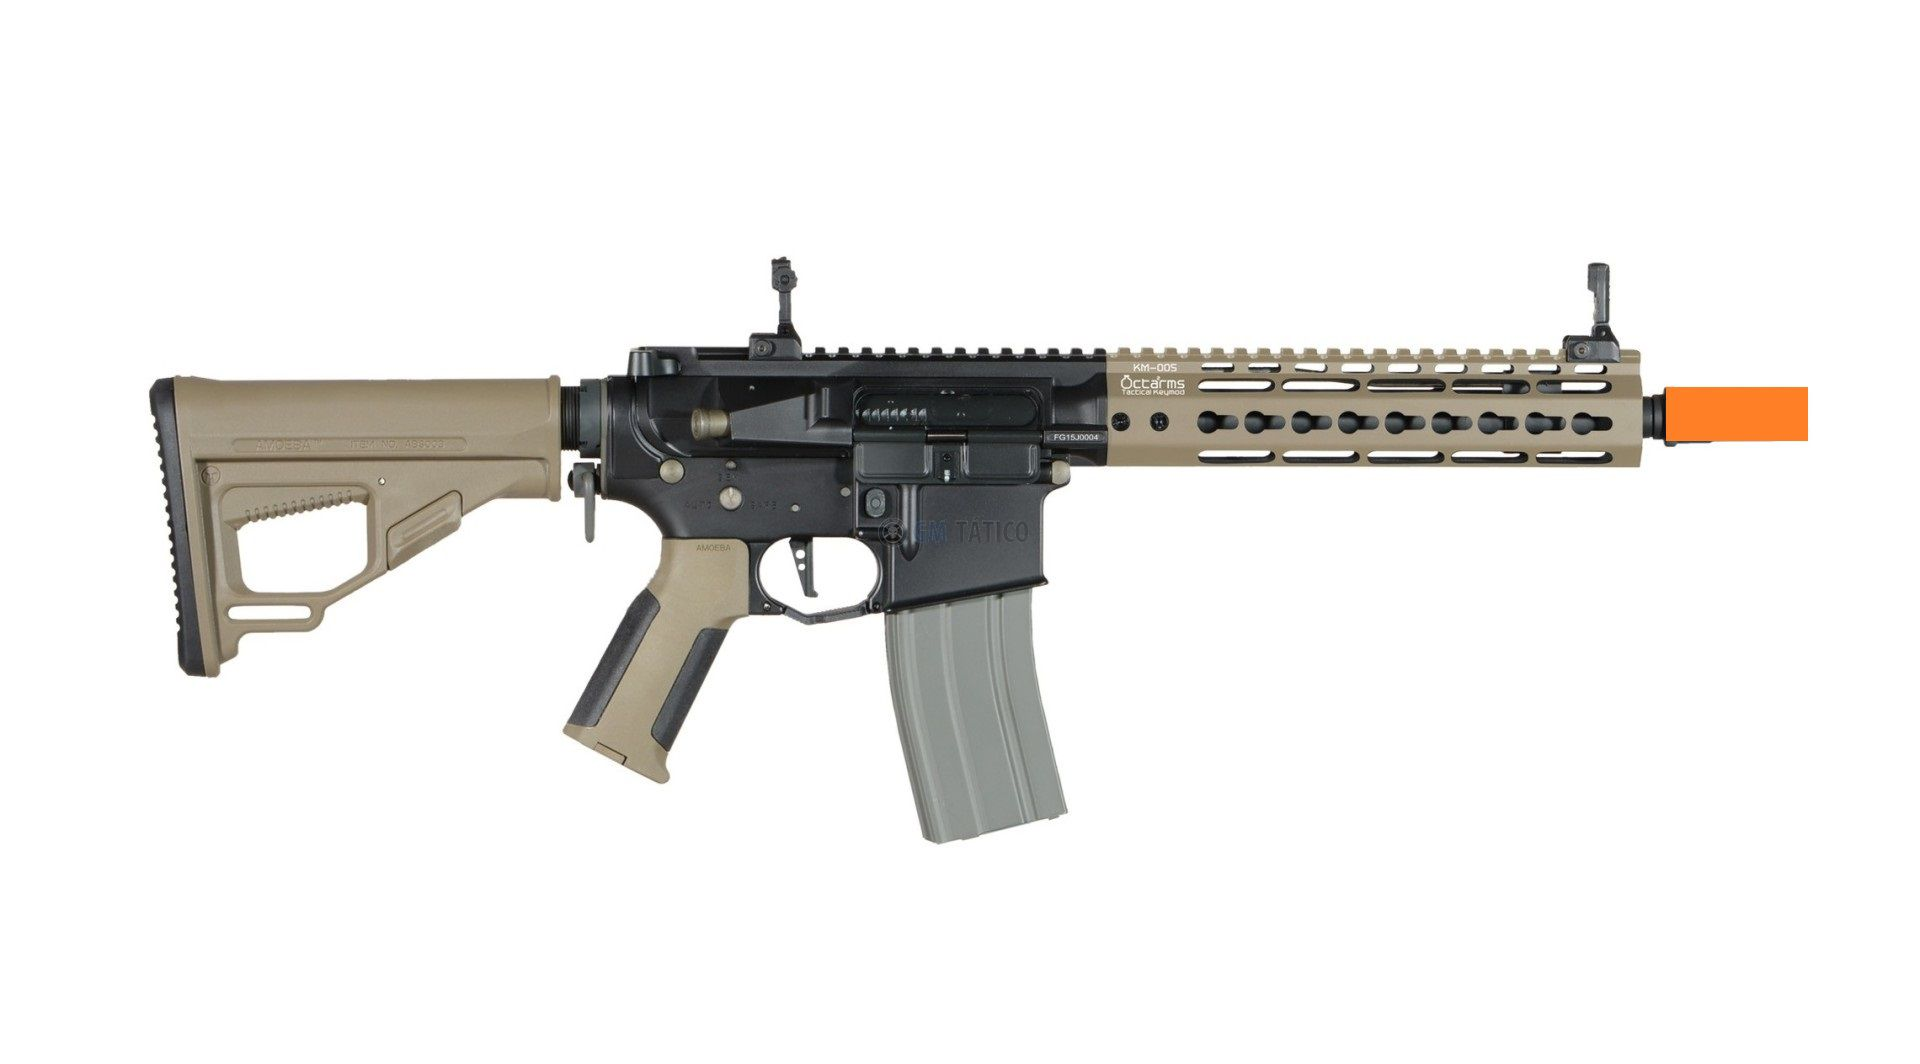 Rifle Airsoft Ares Octarms Km9 Tan Full Metal